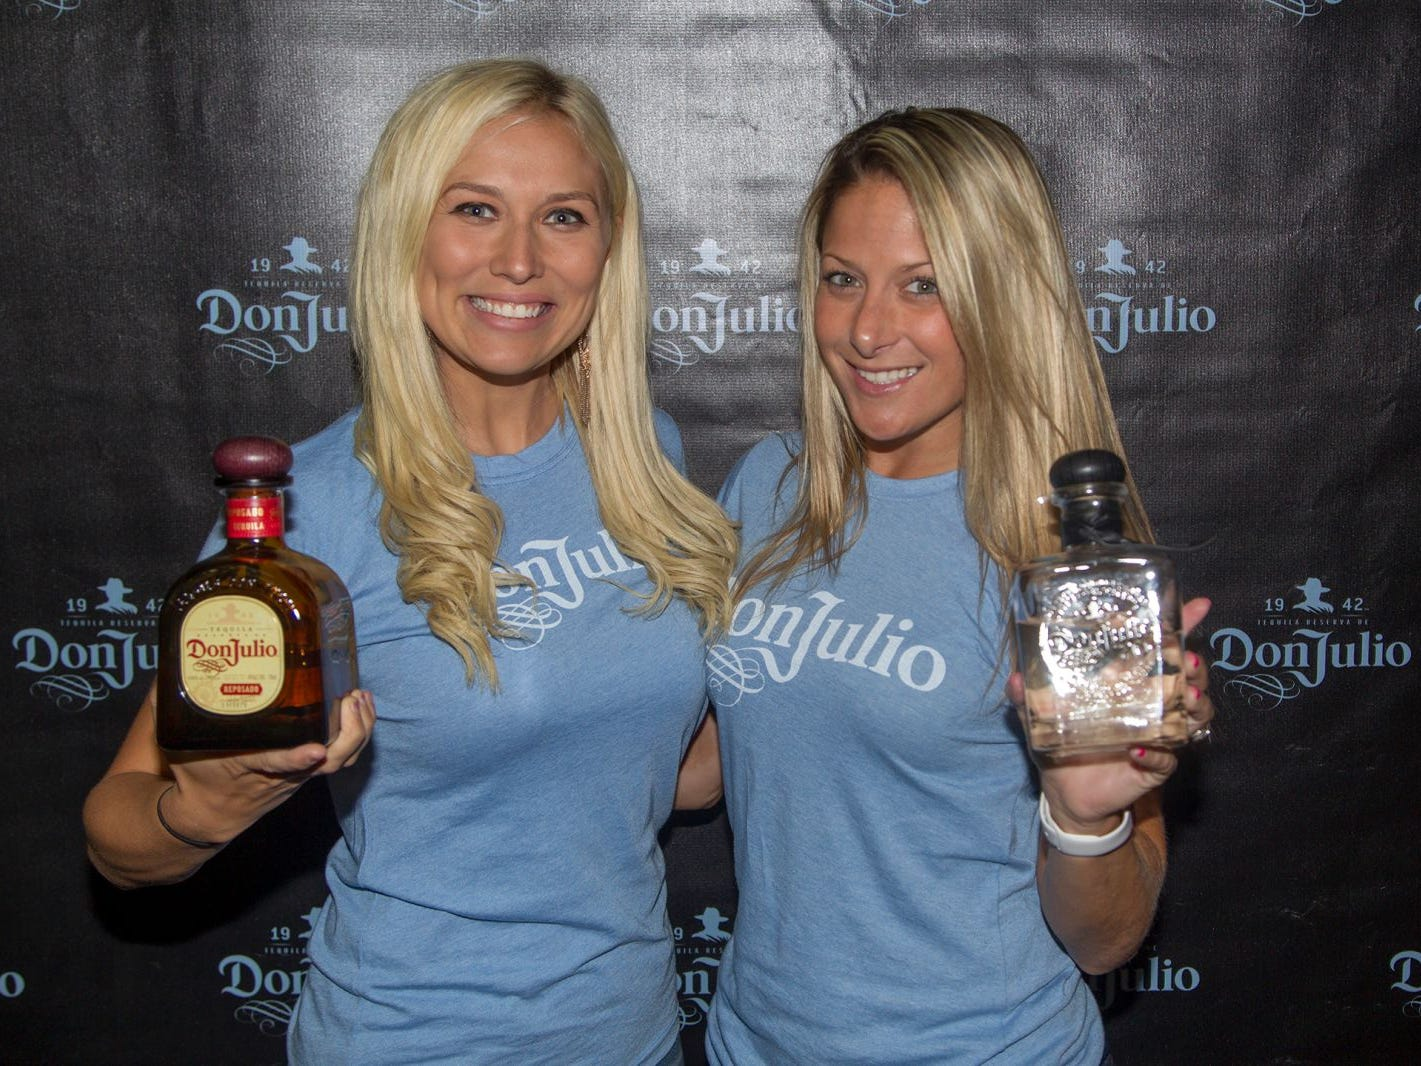 Kathy, Jennifer. Jersey City Craft Distillery Fest at the Harborside Atrium featured more than 100 styles of spirits. Guests had the chance to taste craft-distilled spirits from moonshine, rum, cognac, whiskey, vodka, gin, tequila and more. 09/08/2018